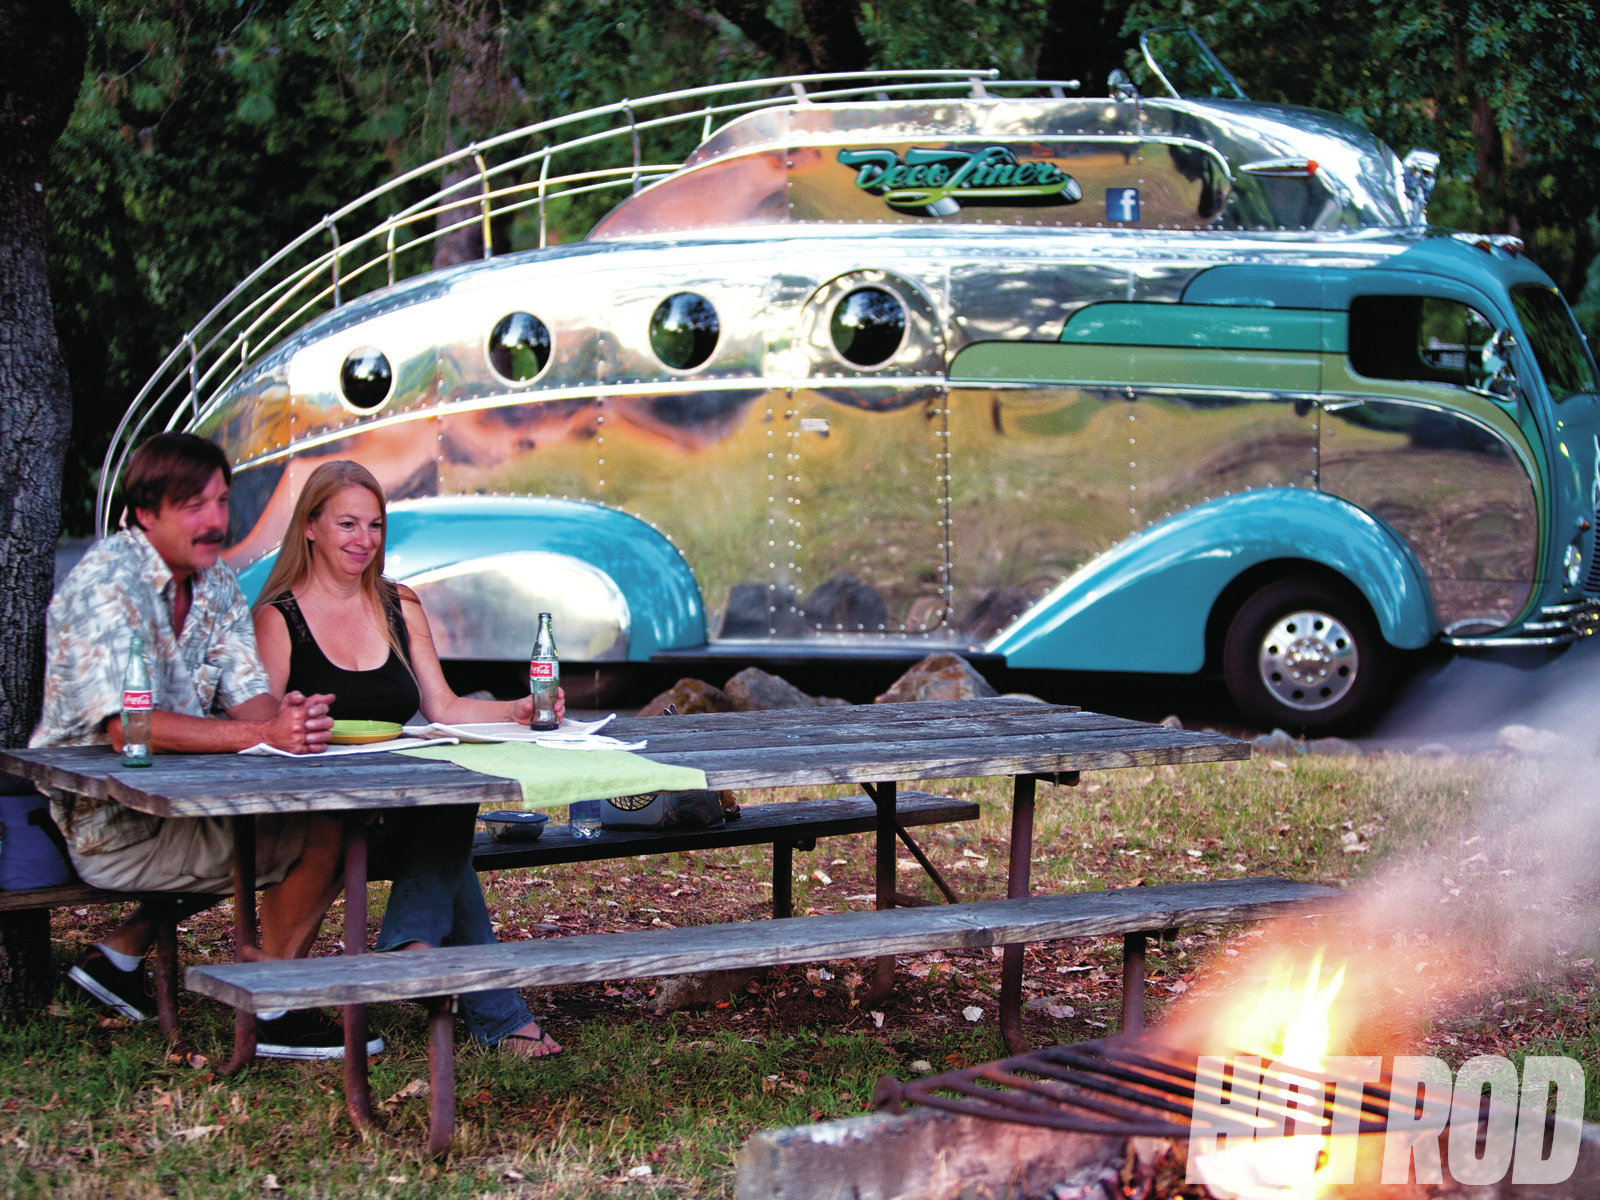 Randy and Jeannette have racked up more than 10,000 miles on the homemade DecoLiner and do use it for camping.